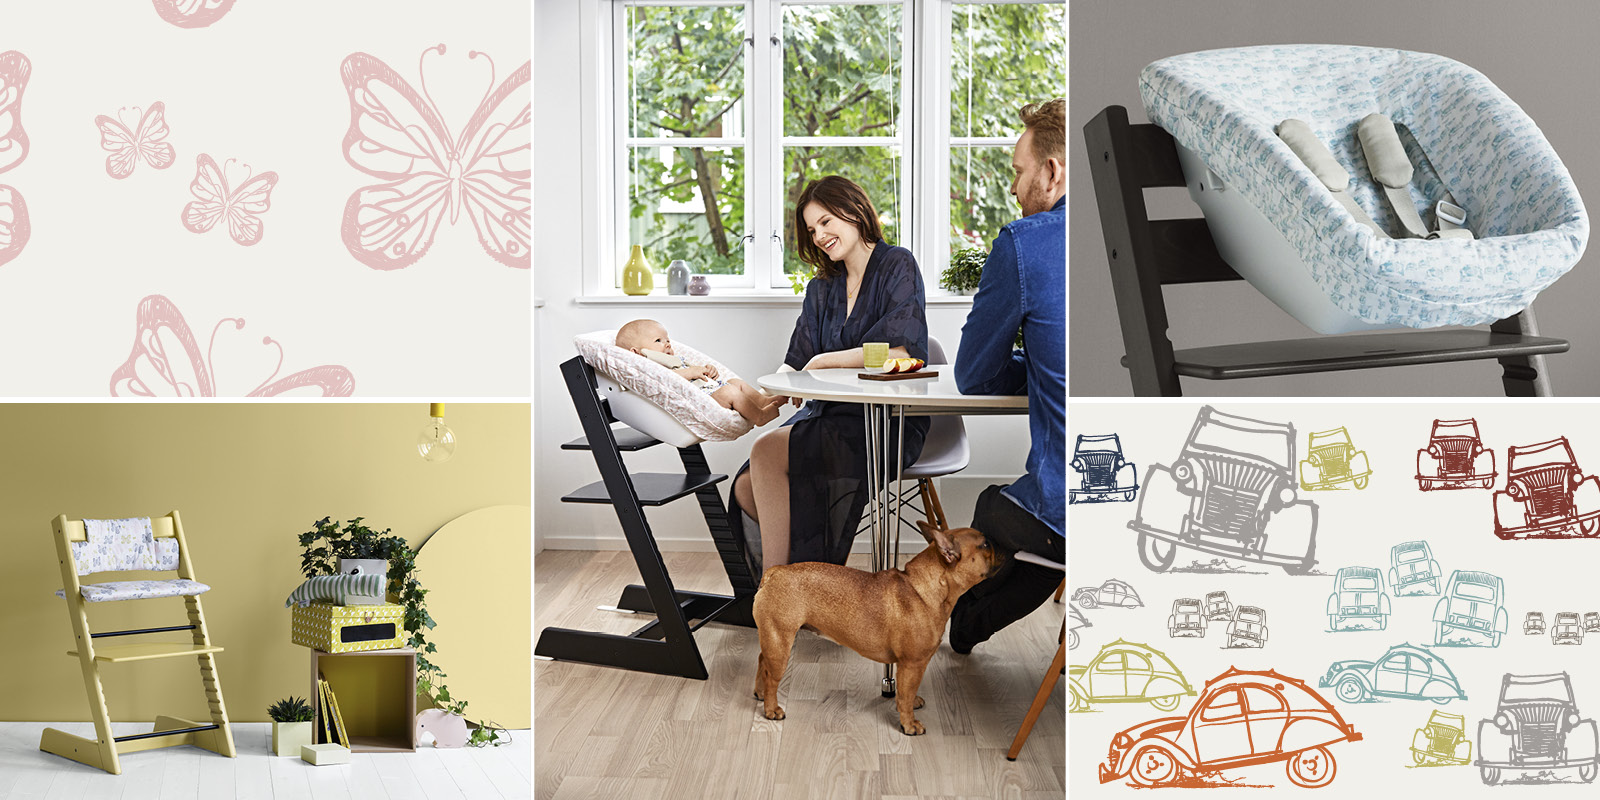 Stokke Tripp Trapp With New Exciting Colors